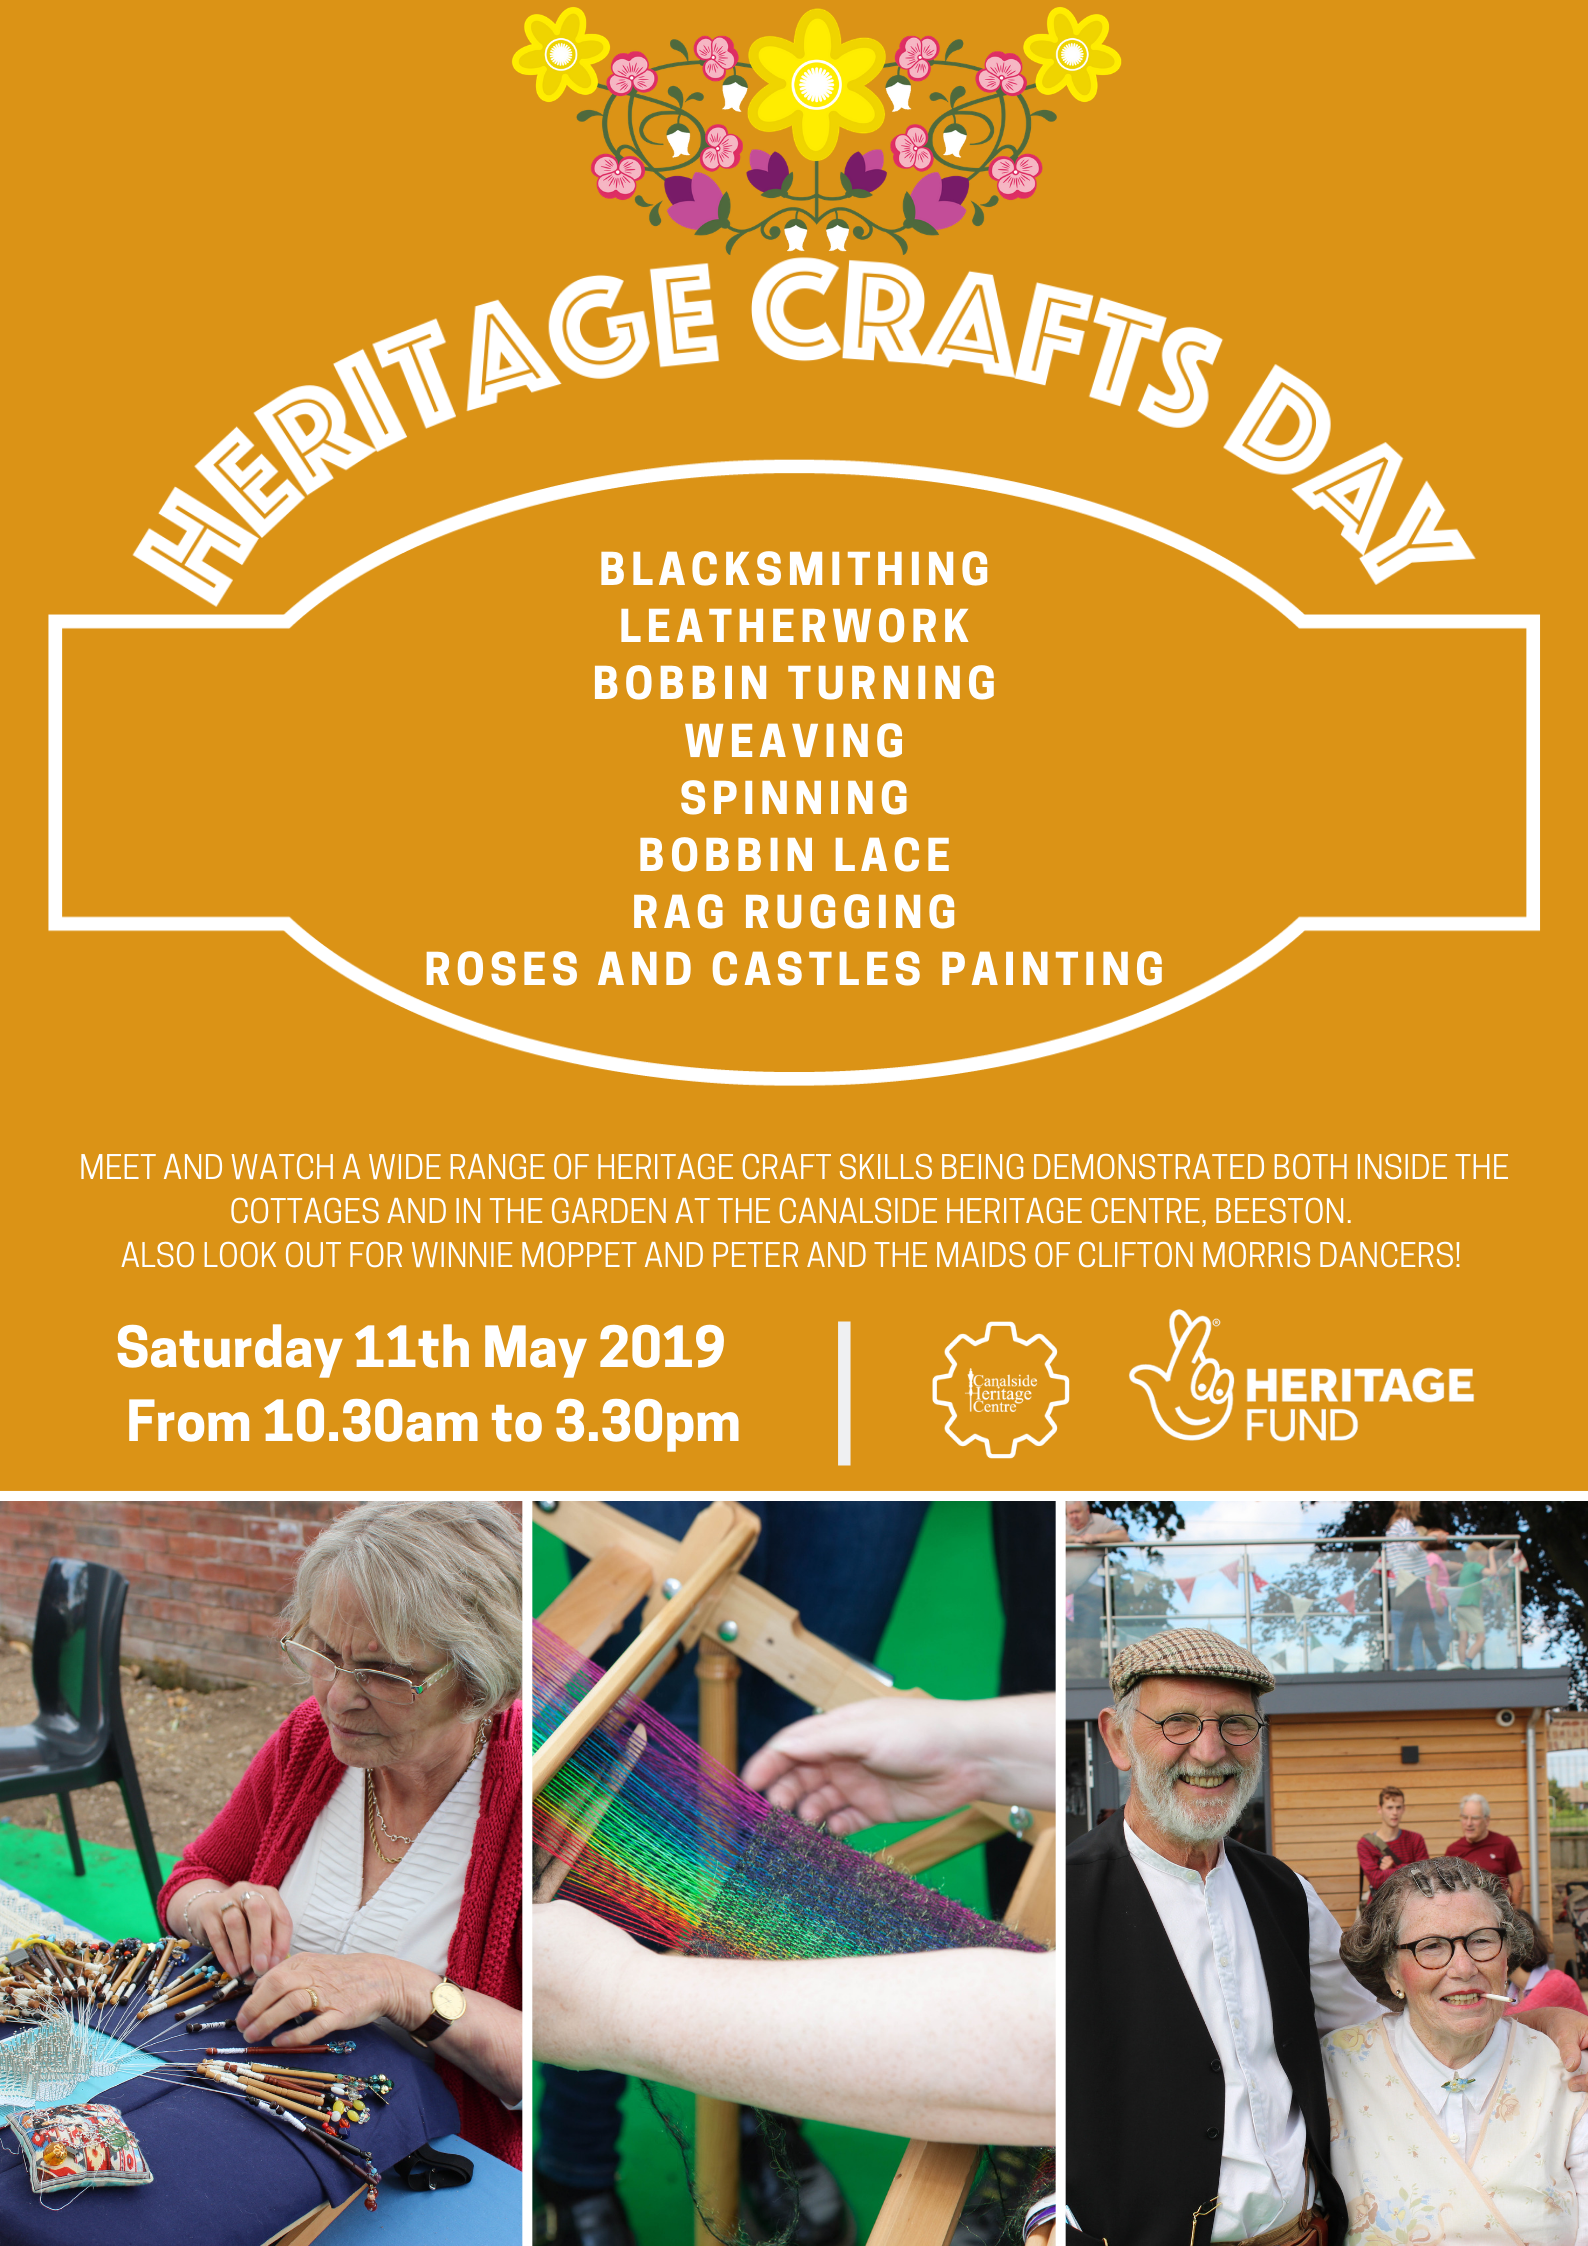 Heritage Crafts Day event.